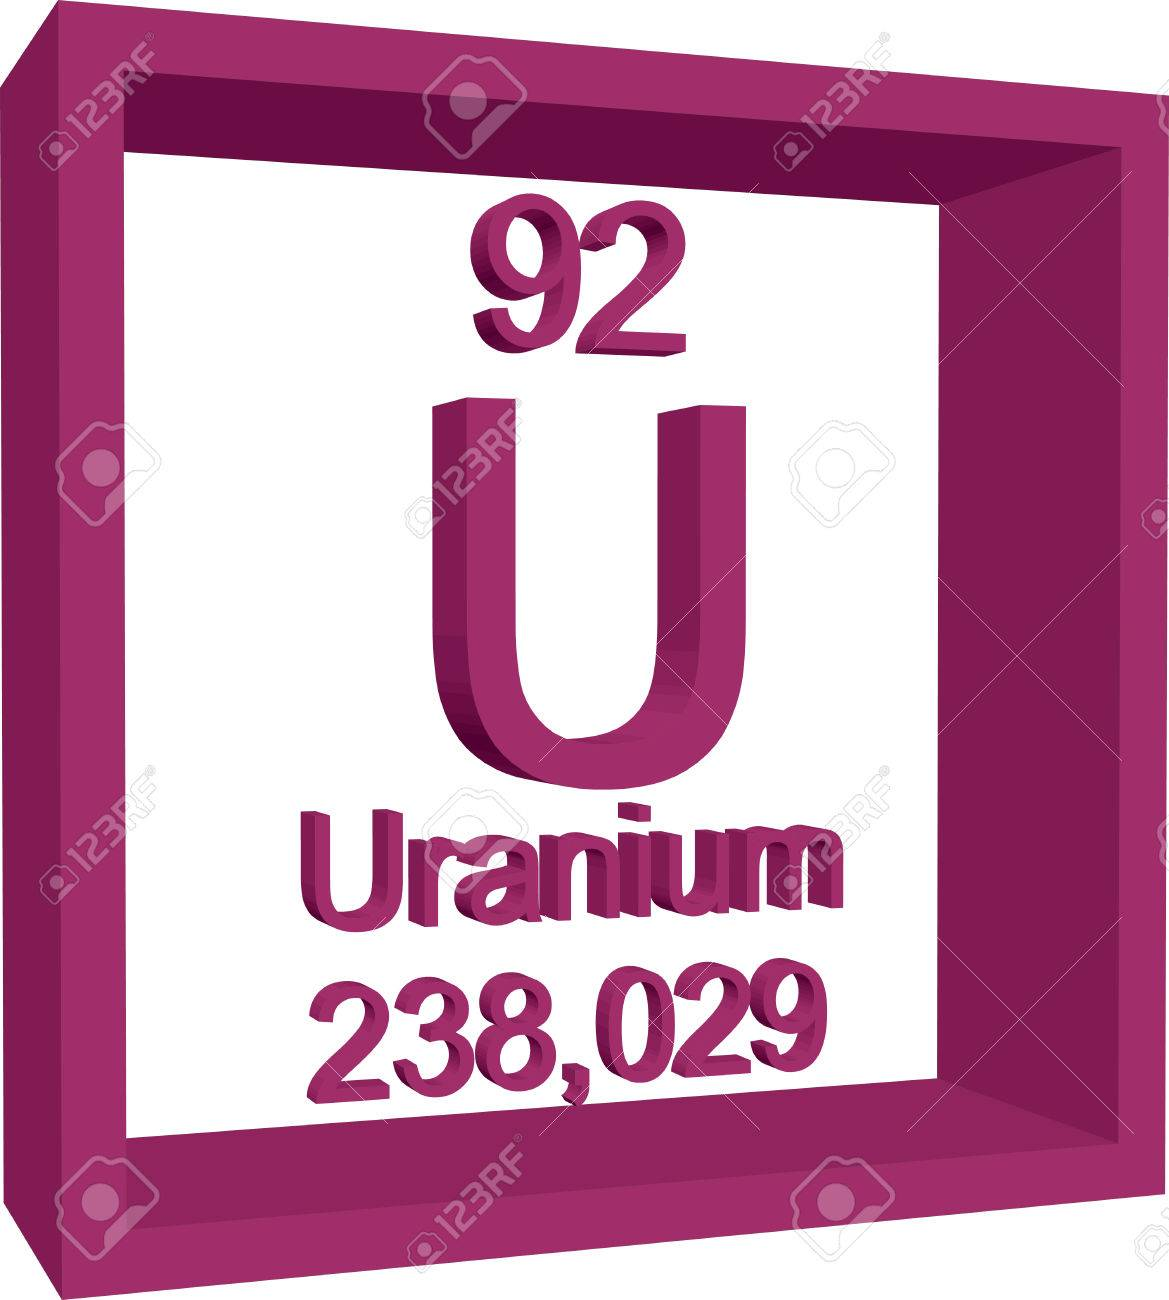 Periodic table uranium images periodic table images periodic table of elements uranium royalty free cliparts periodic table of elements uranium stock vector 57967534 gamestrikefo Image collections